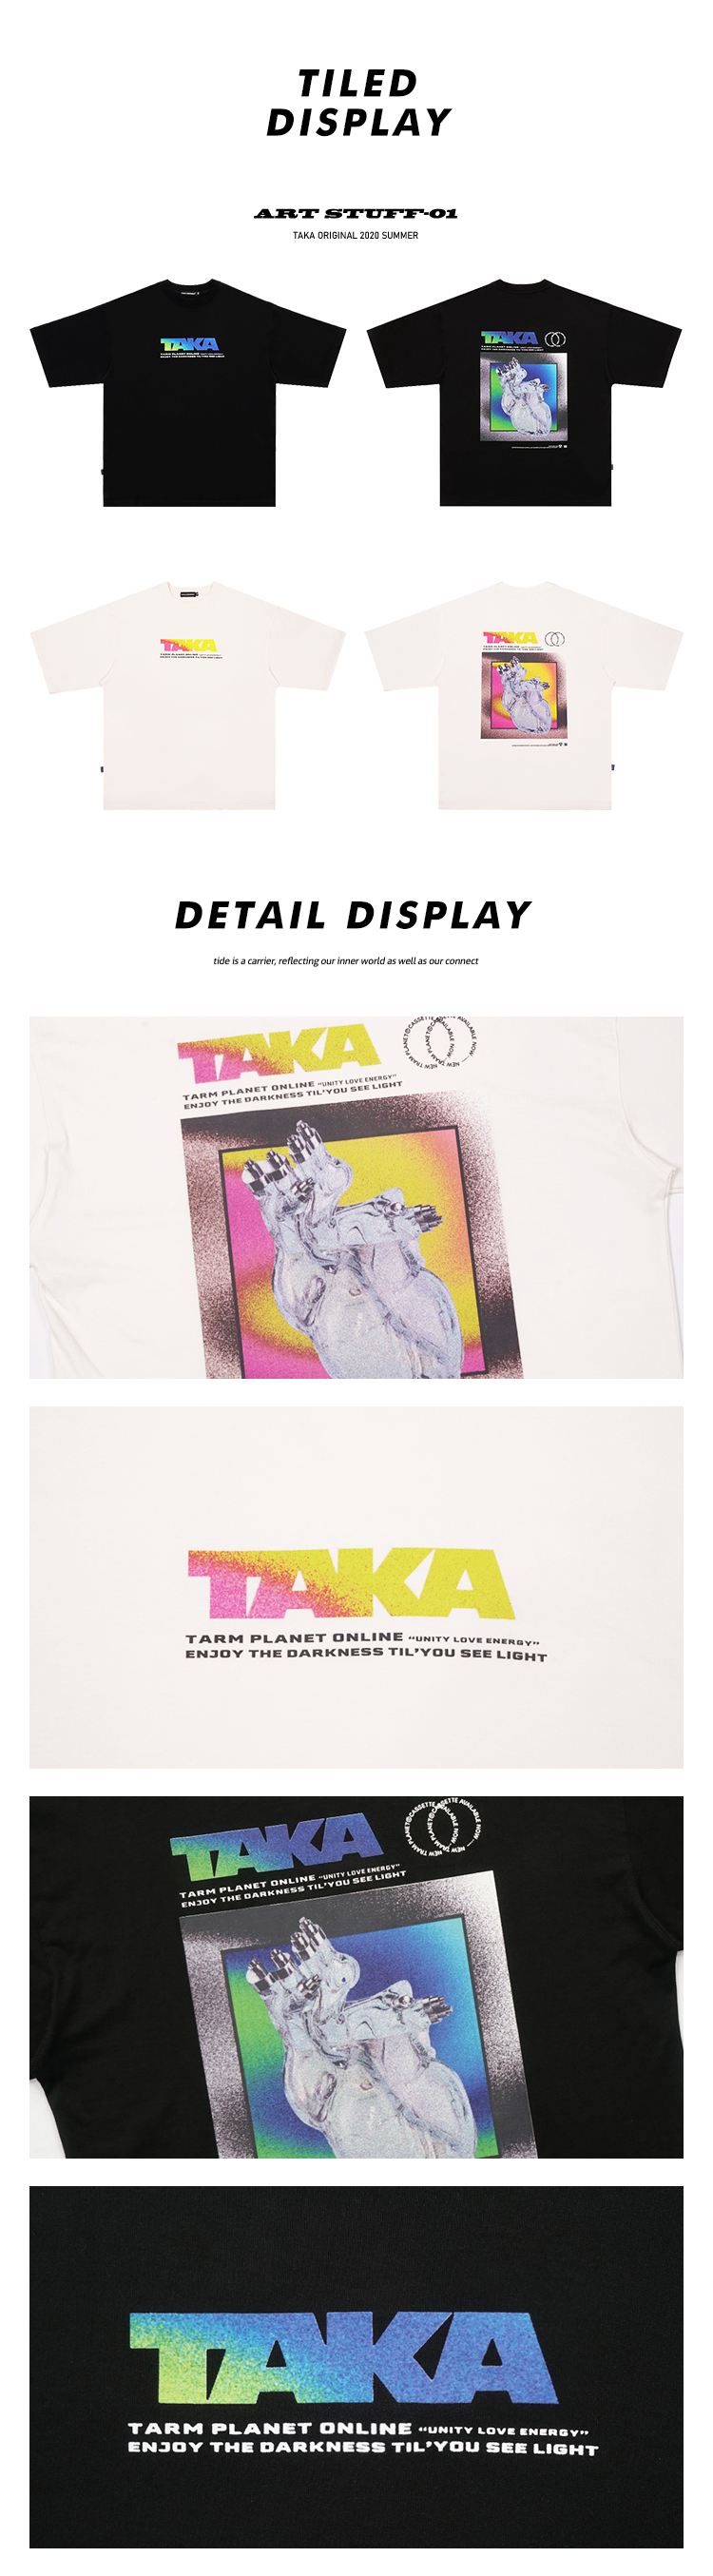 Short Sleeves Tees for Men and Women - Shop for t-shirts online. Choose from a wide range of women's and men's t-shirts from Taka Original.